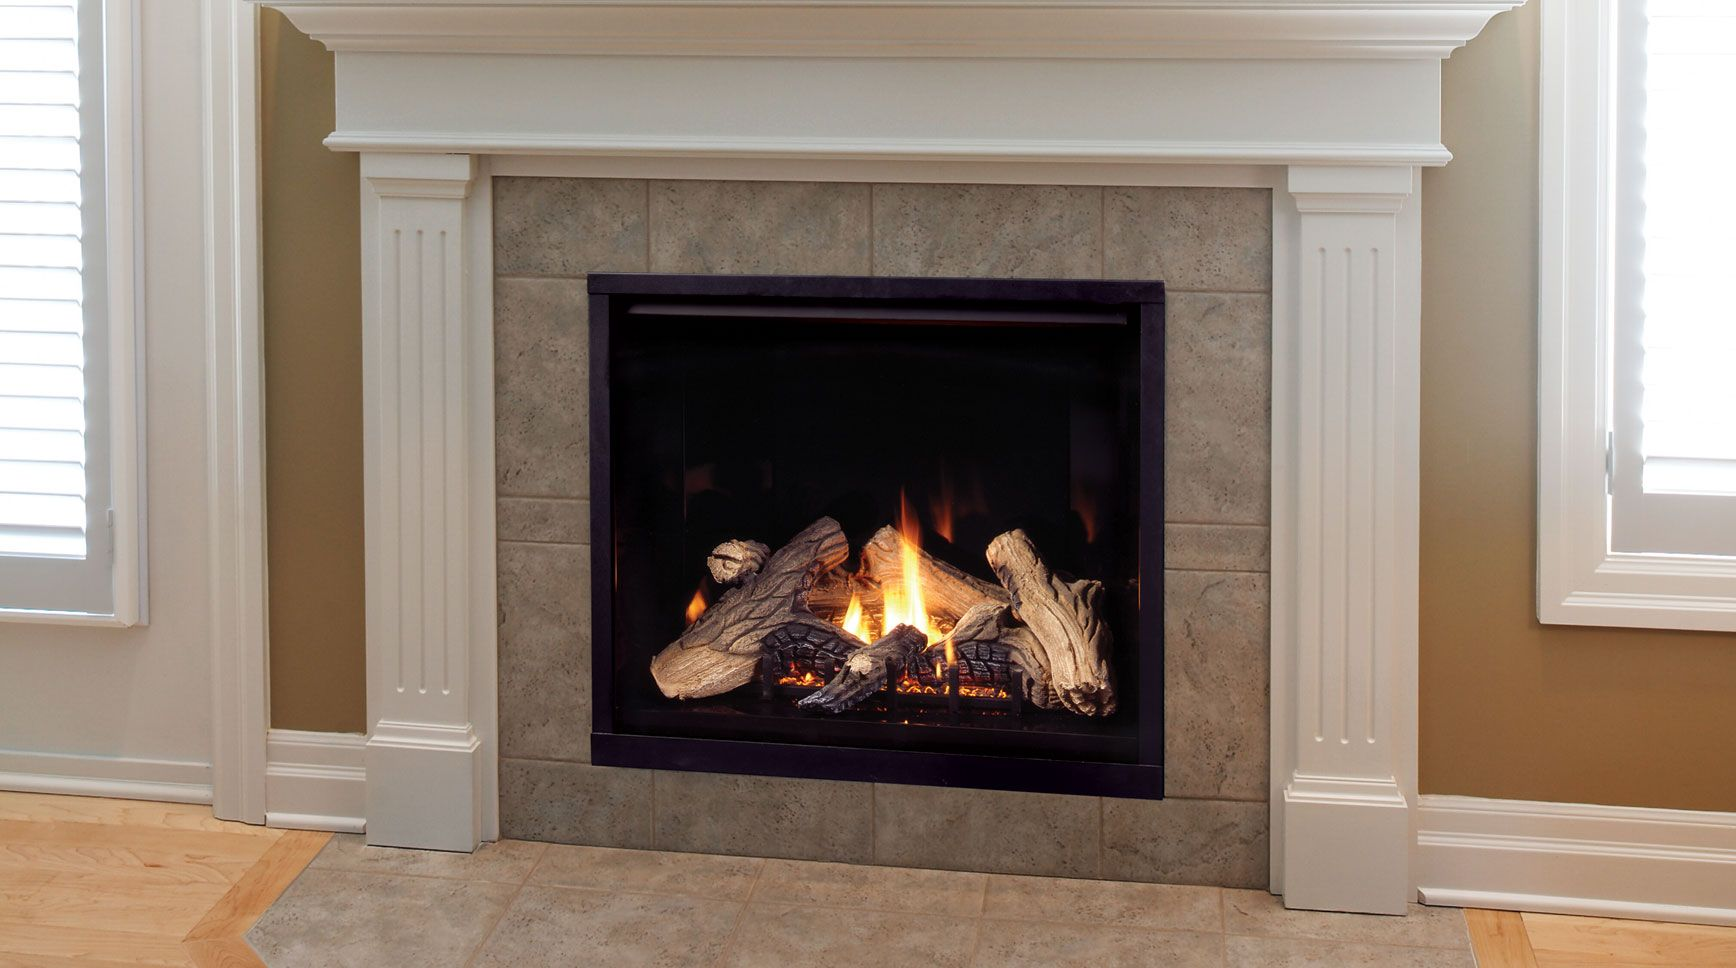 Gas fireplaces come in vented or non